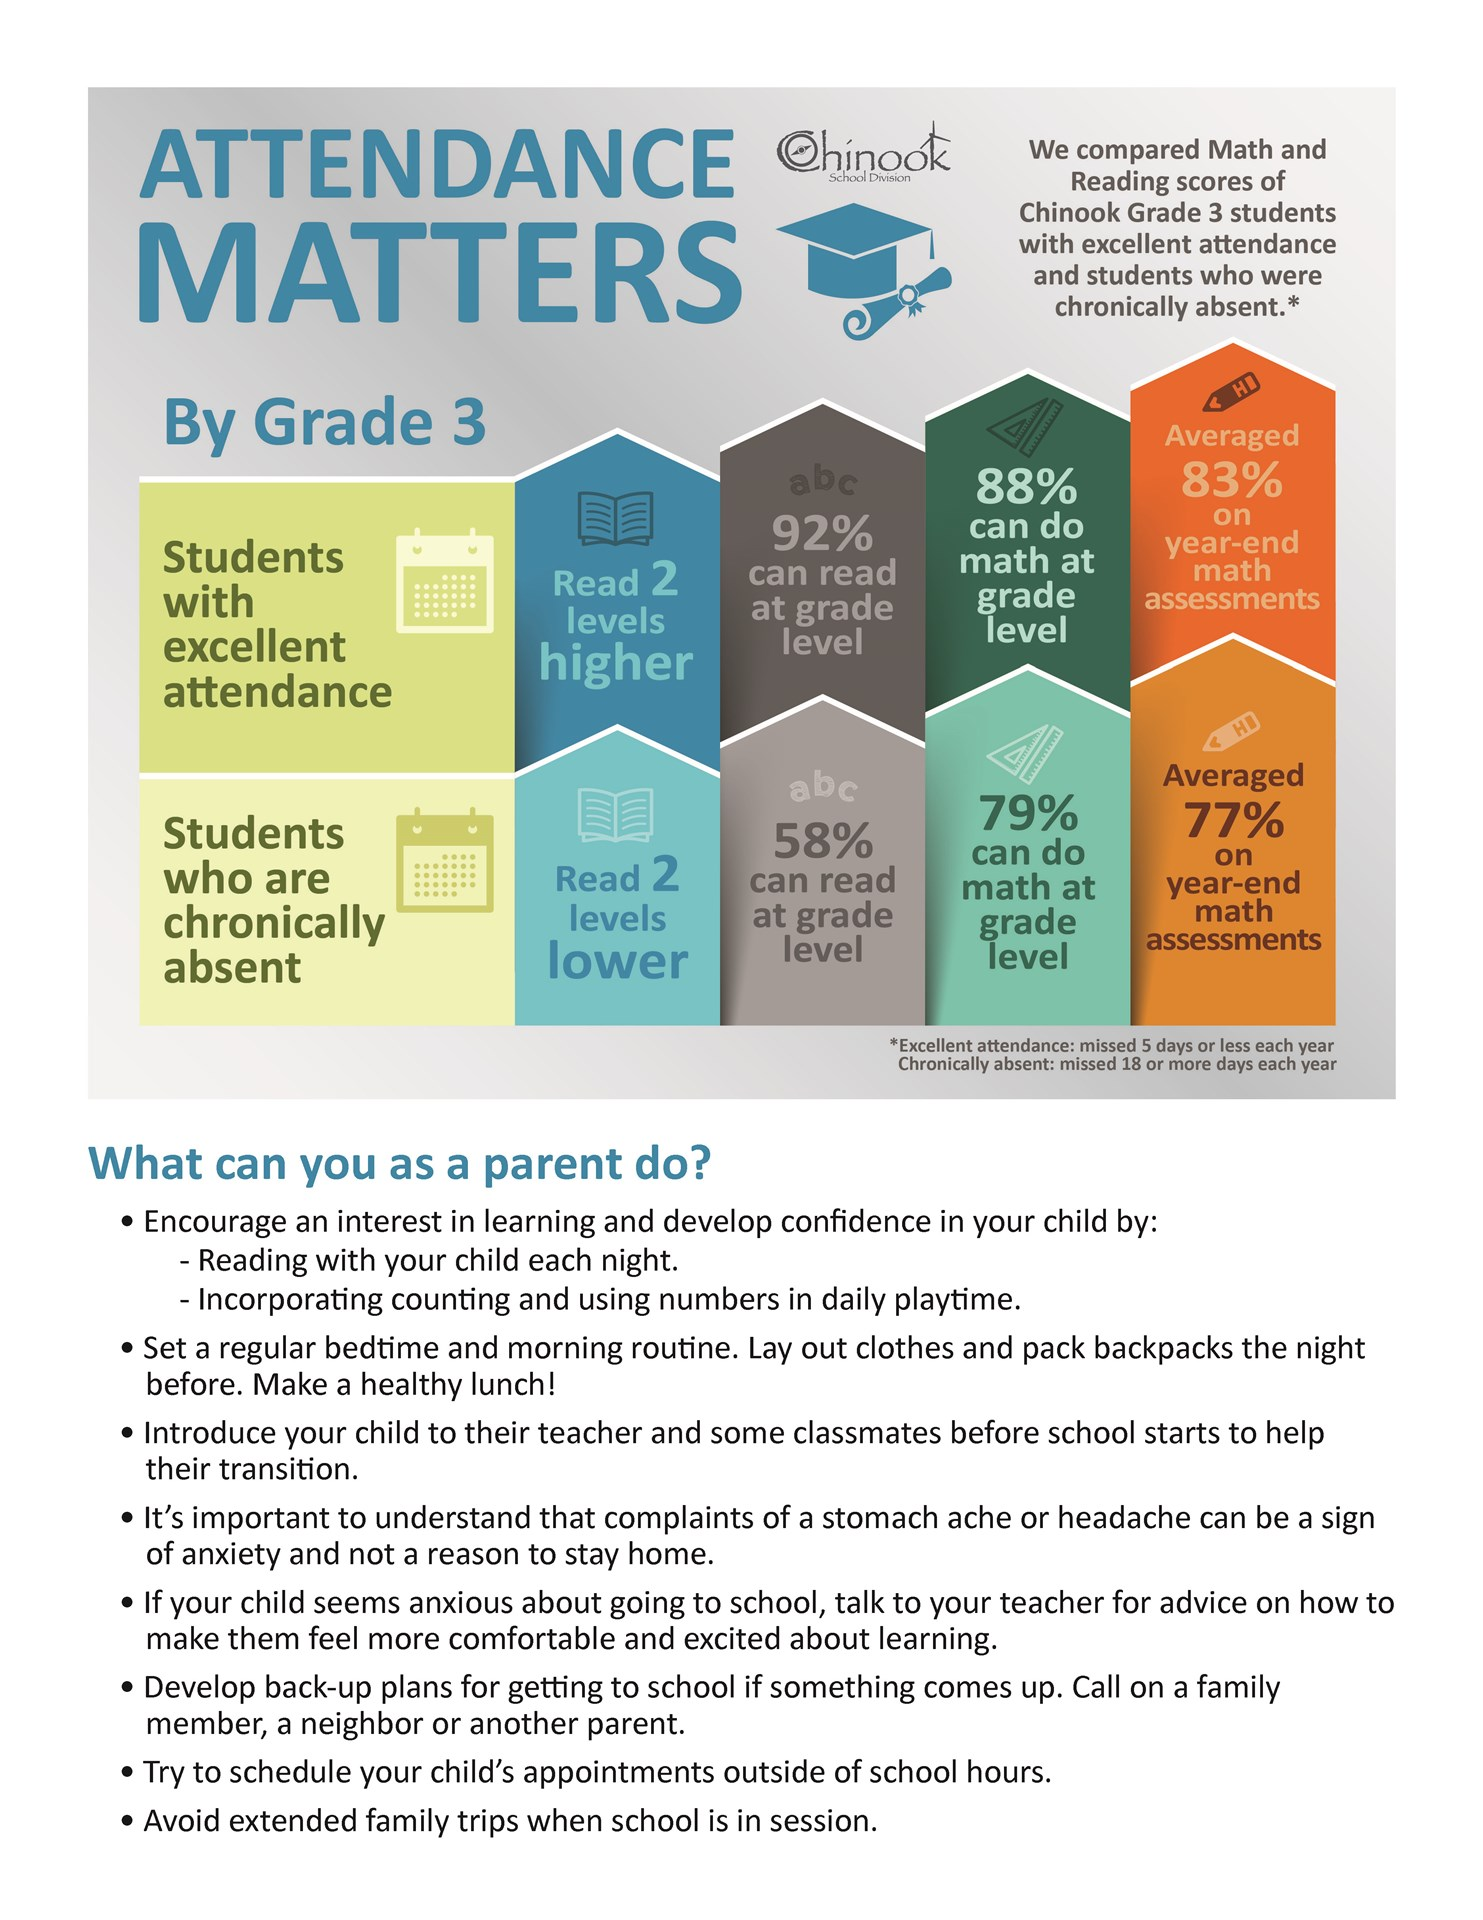 Attendance Matters - What can you as a parent do?